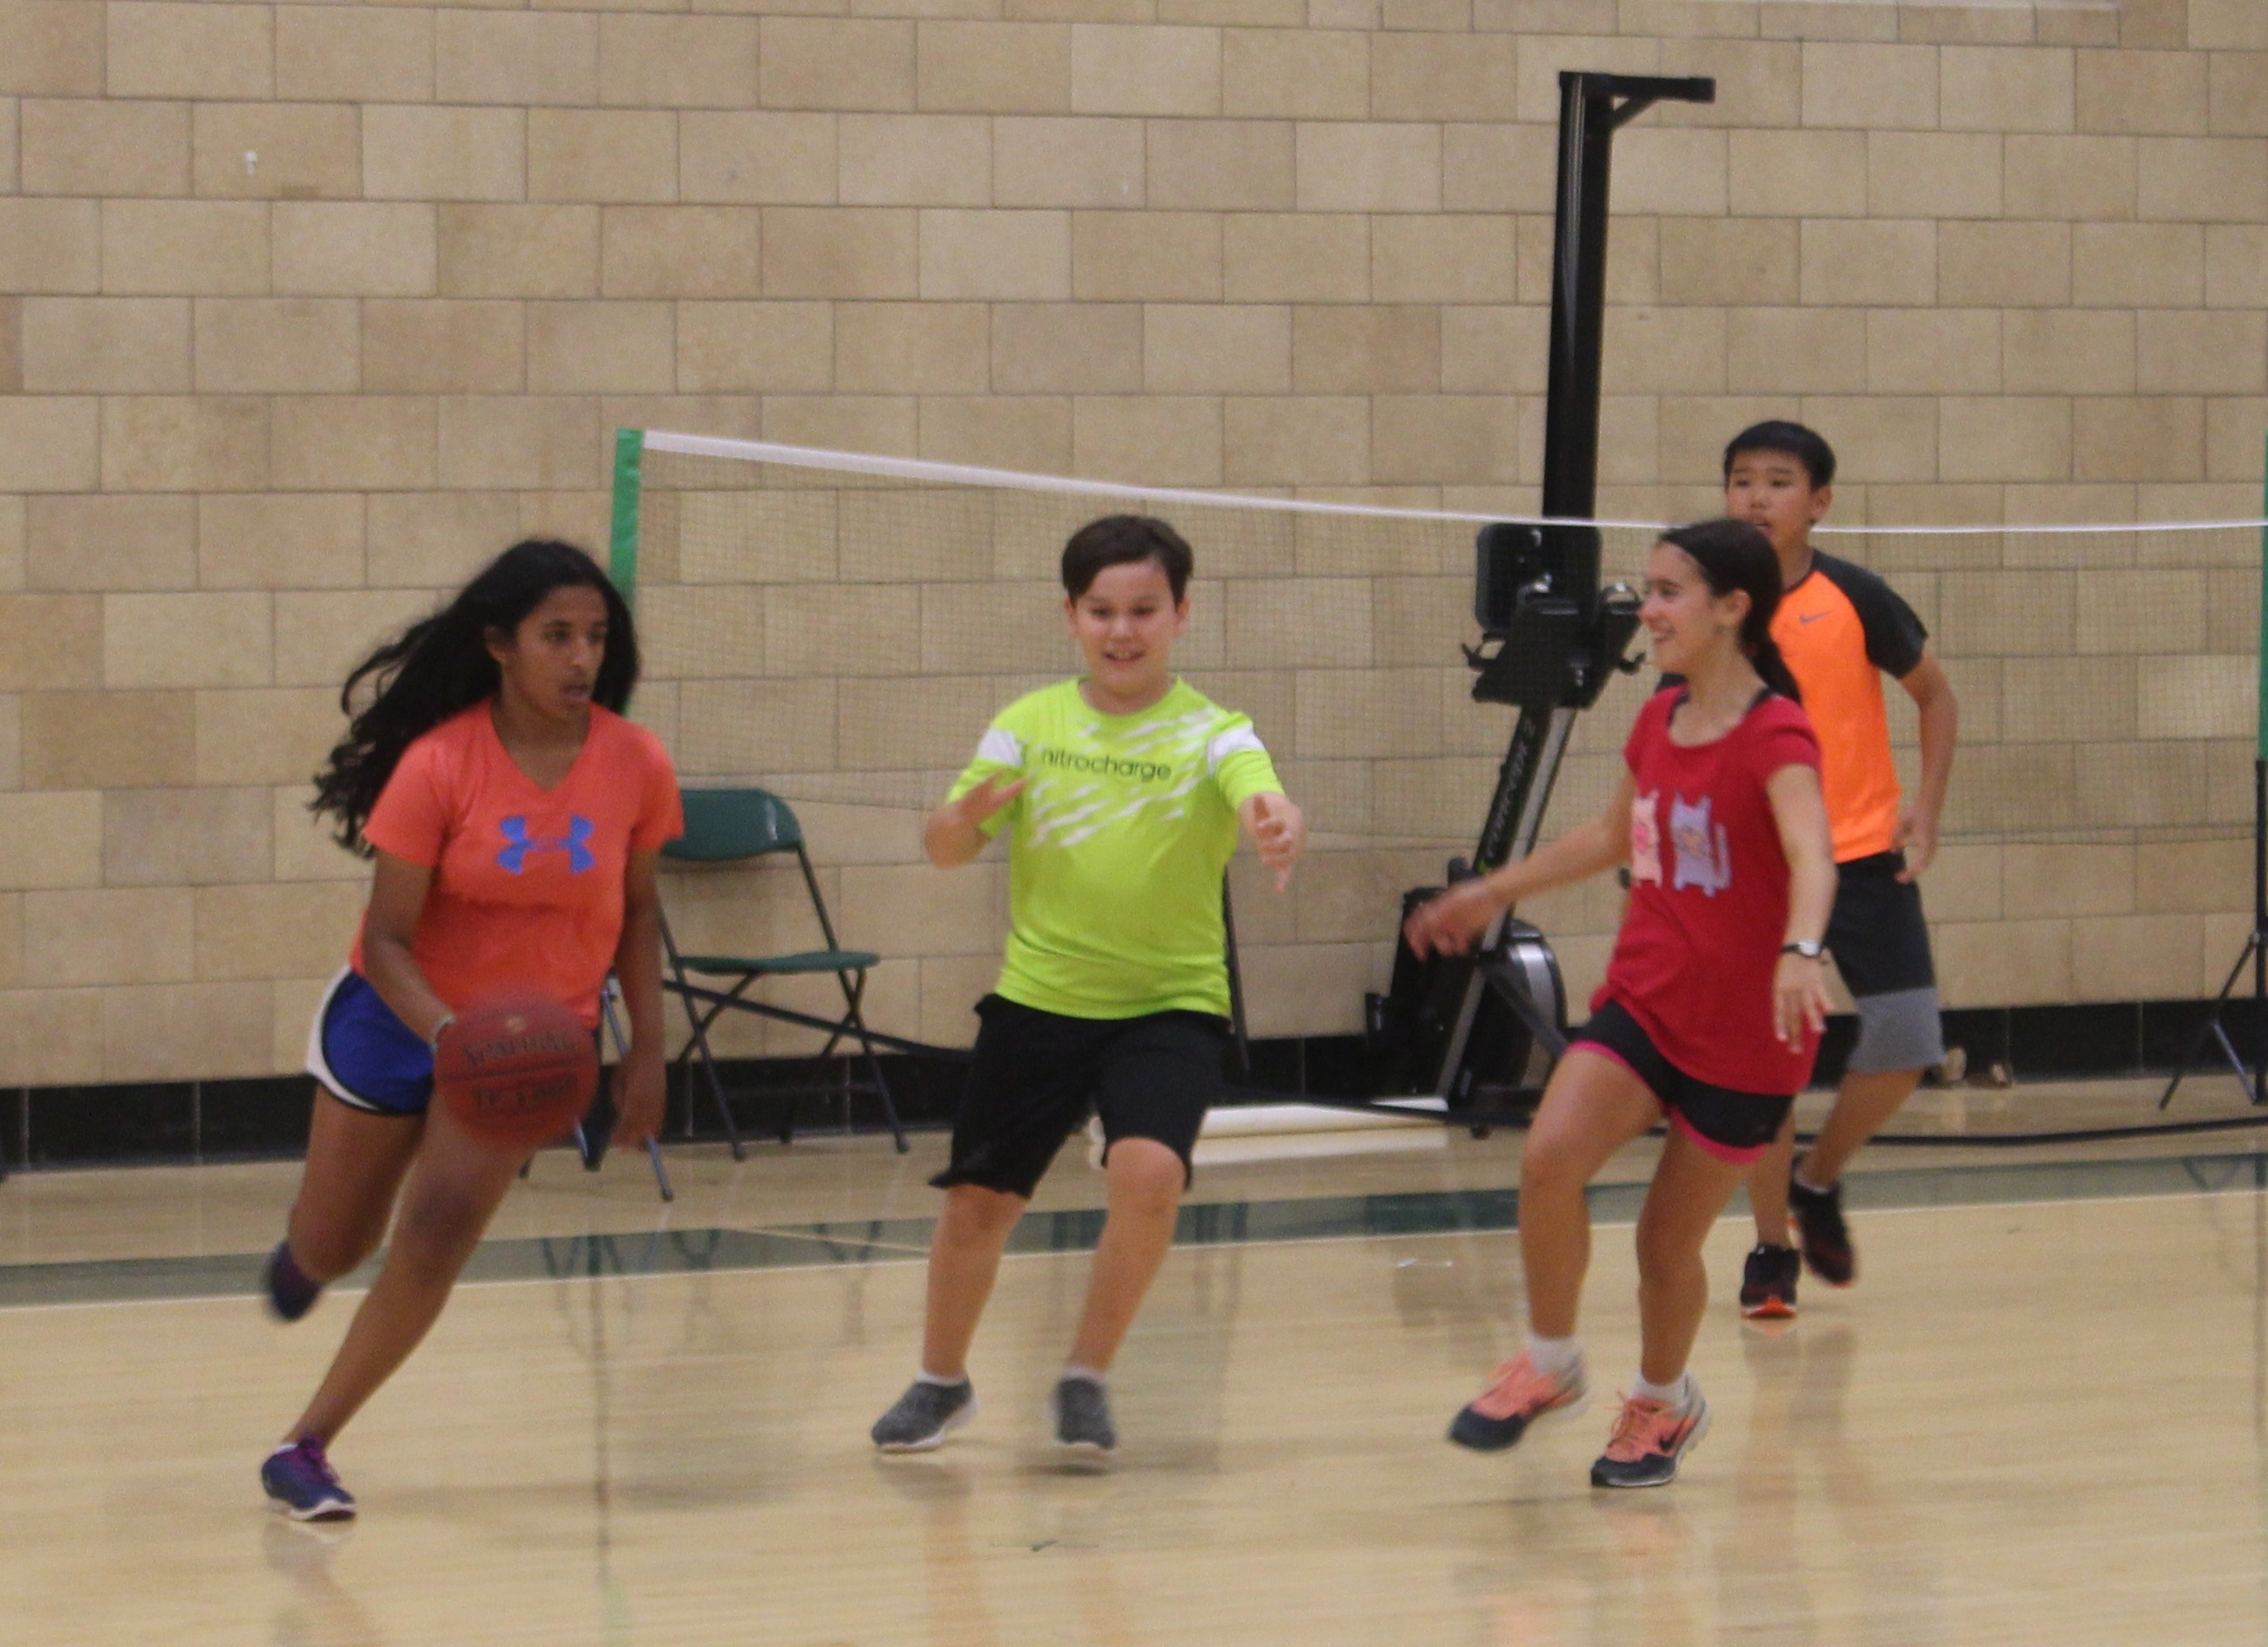 Reshma rushes down court with some serious intensity!